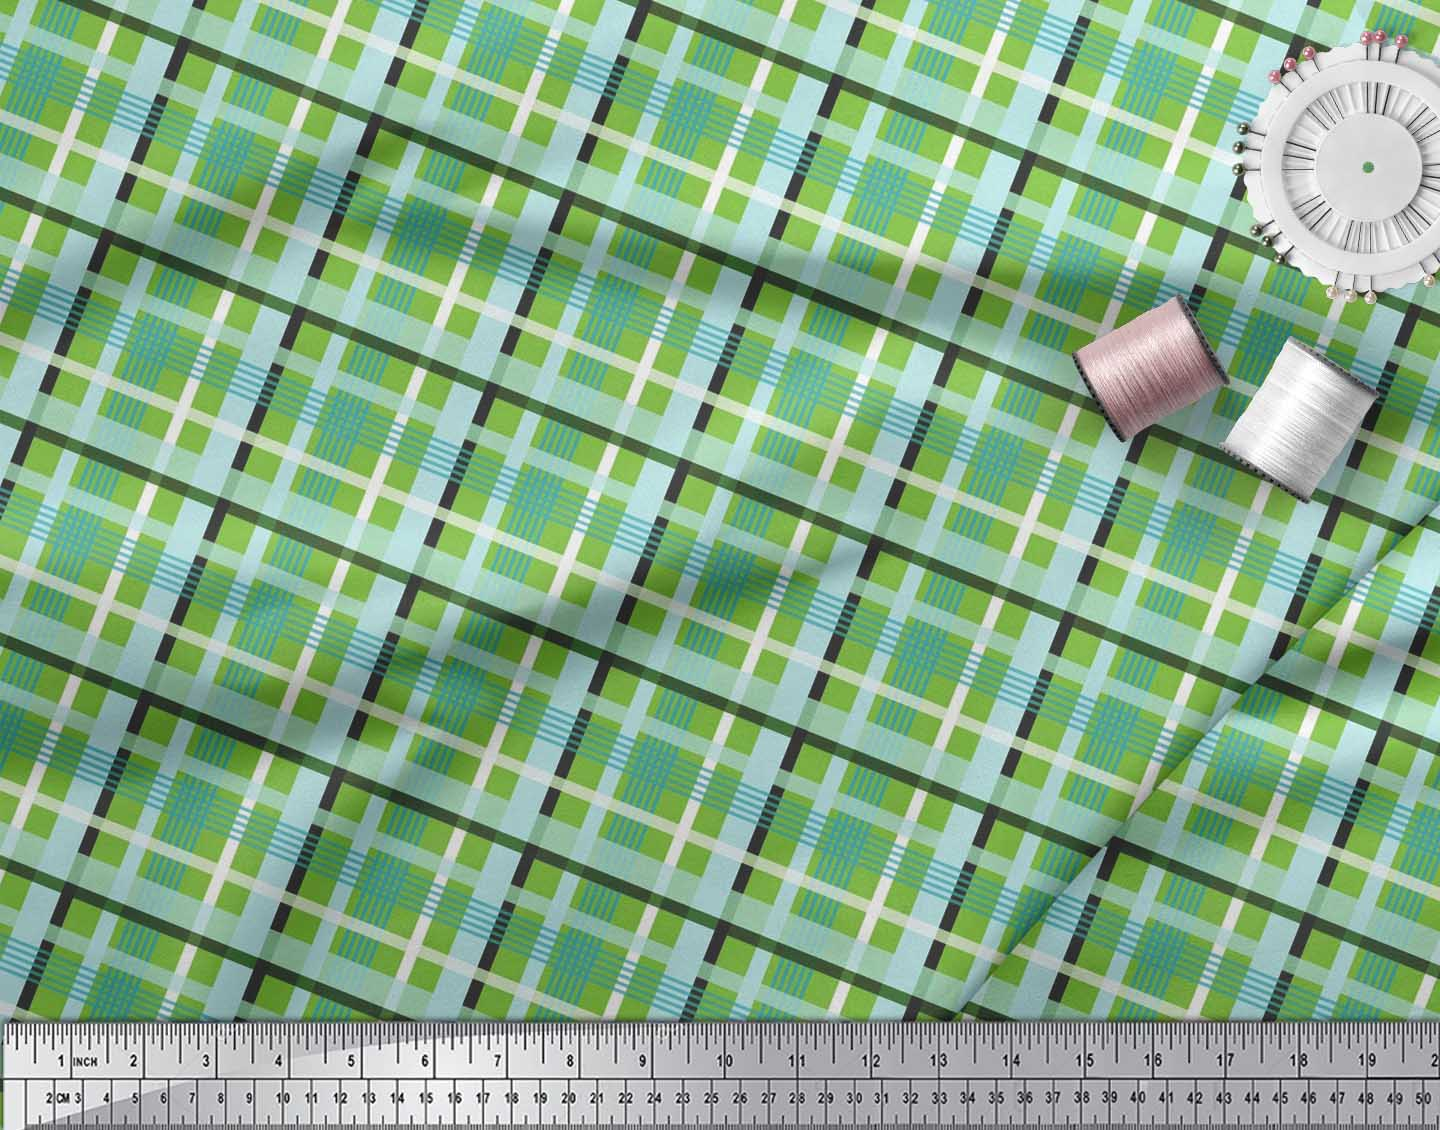 Soimoi-Cotton-Poplin-Fabric-Check-Check-Printed-Craft-Fabric-by-eBK thumbnail 3